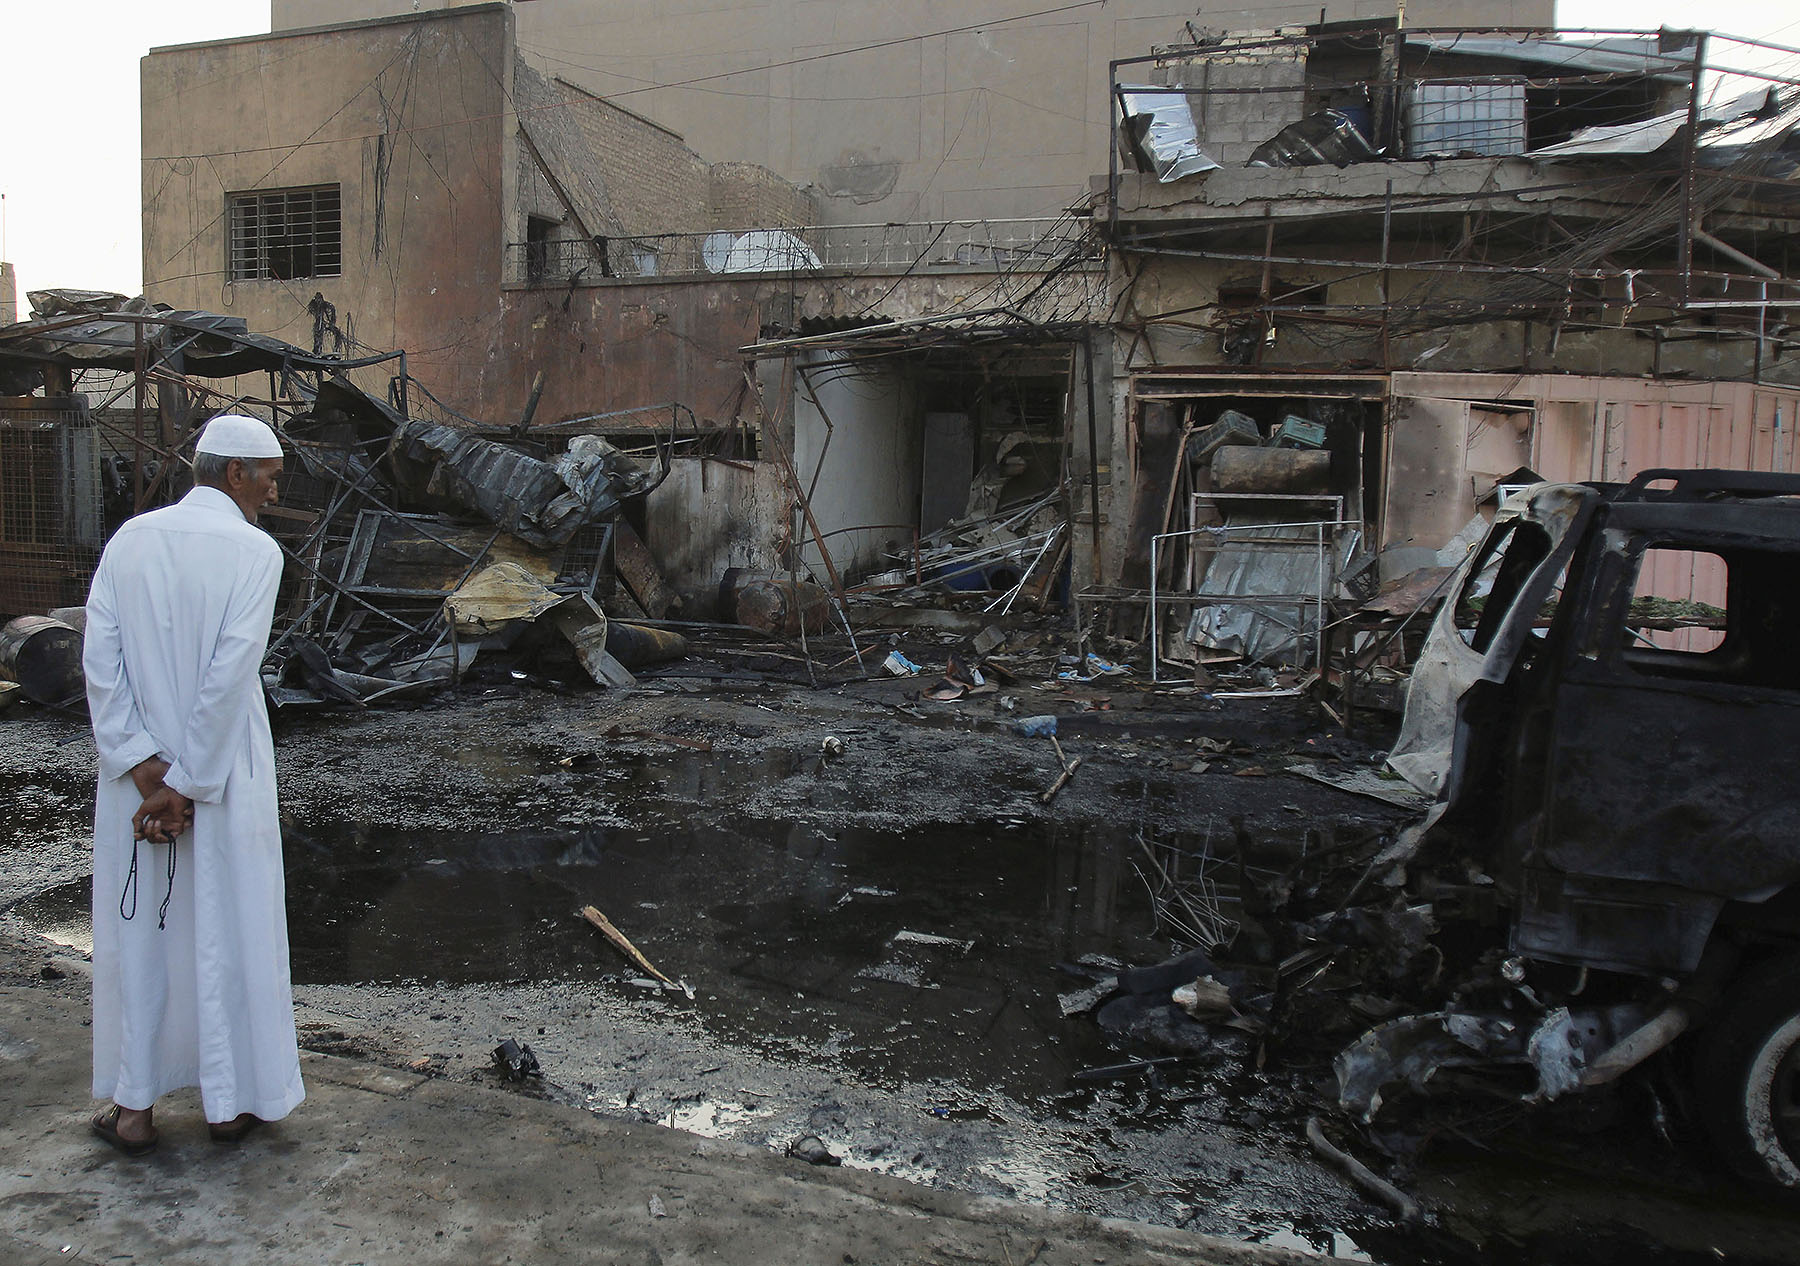 A man inspects the site a day after a bomb attack in Baghdad.